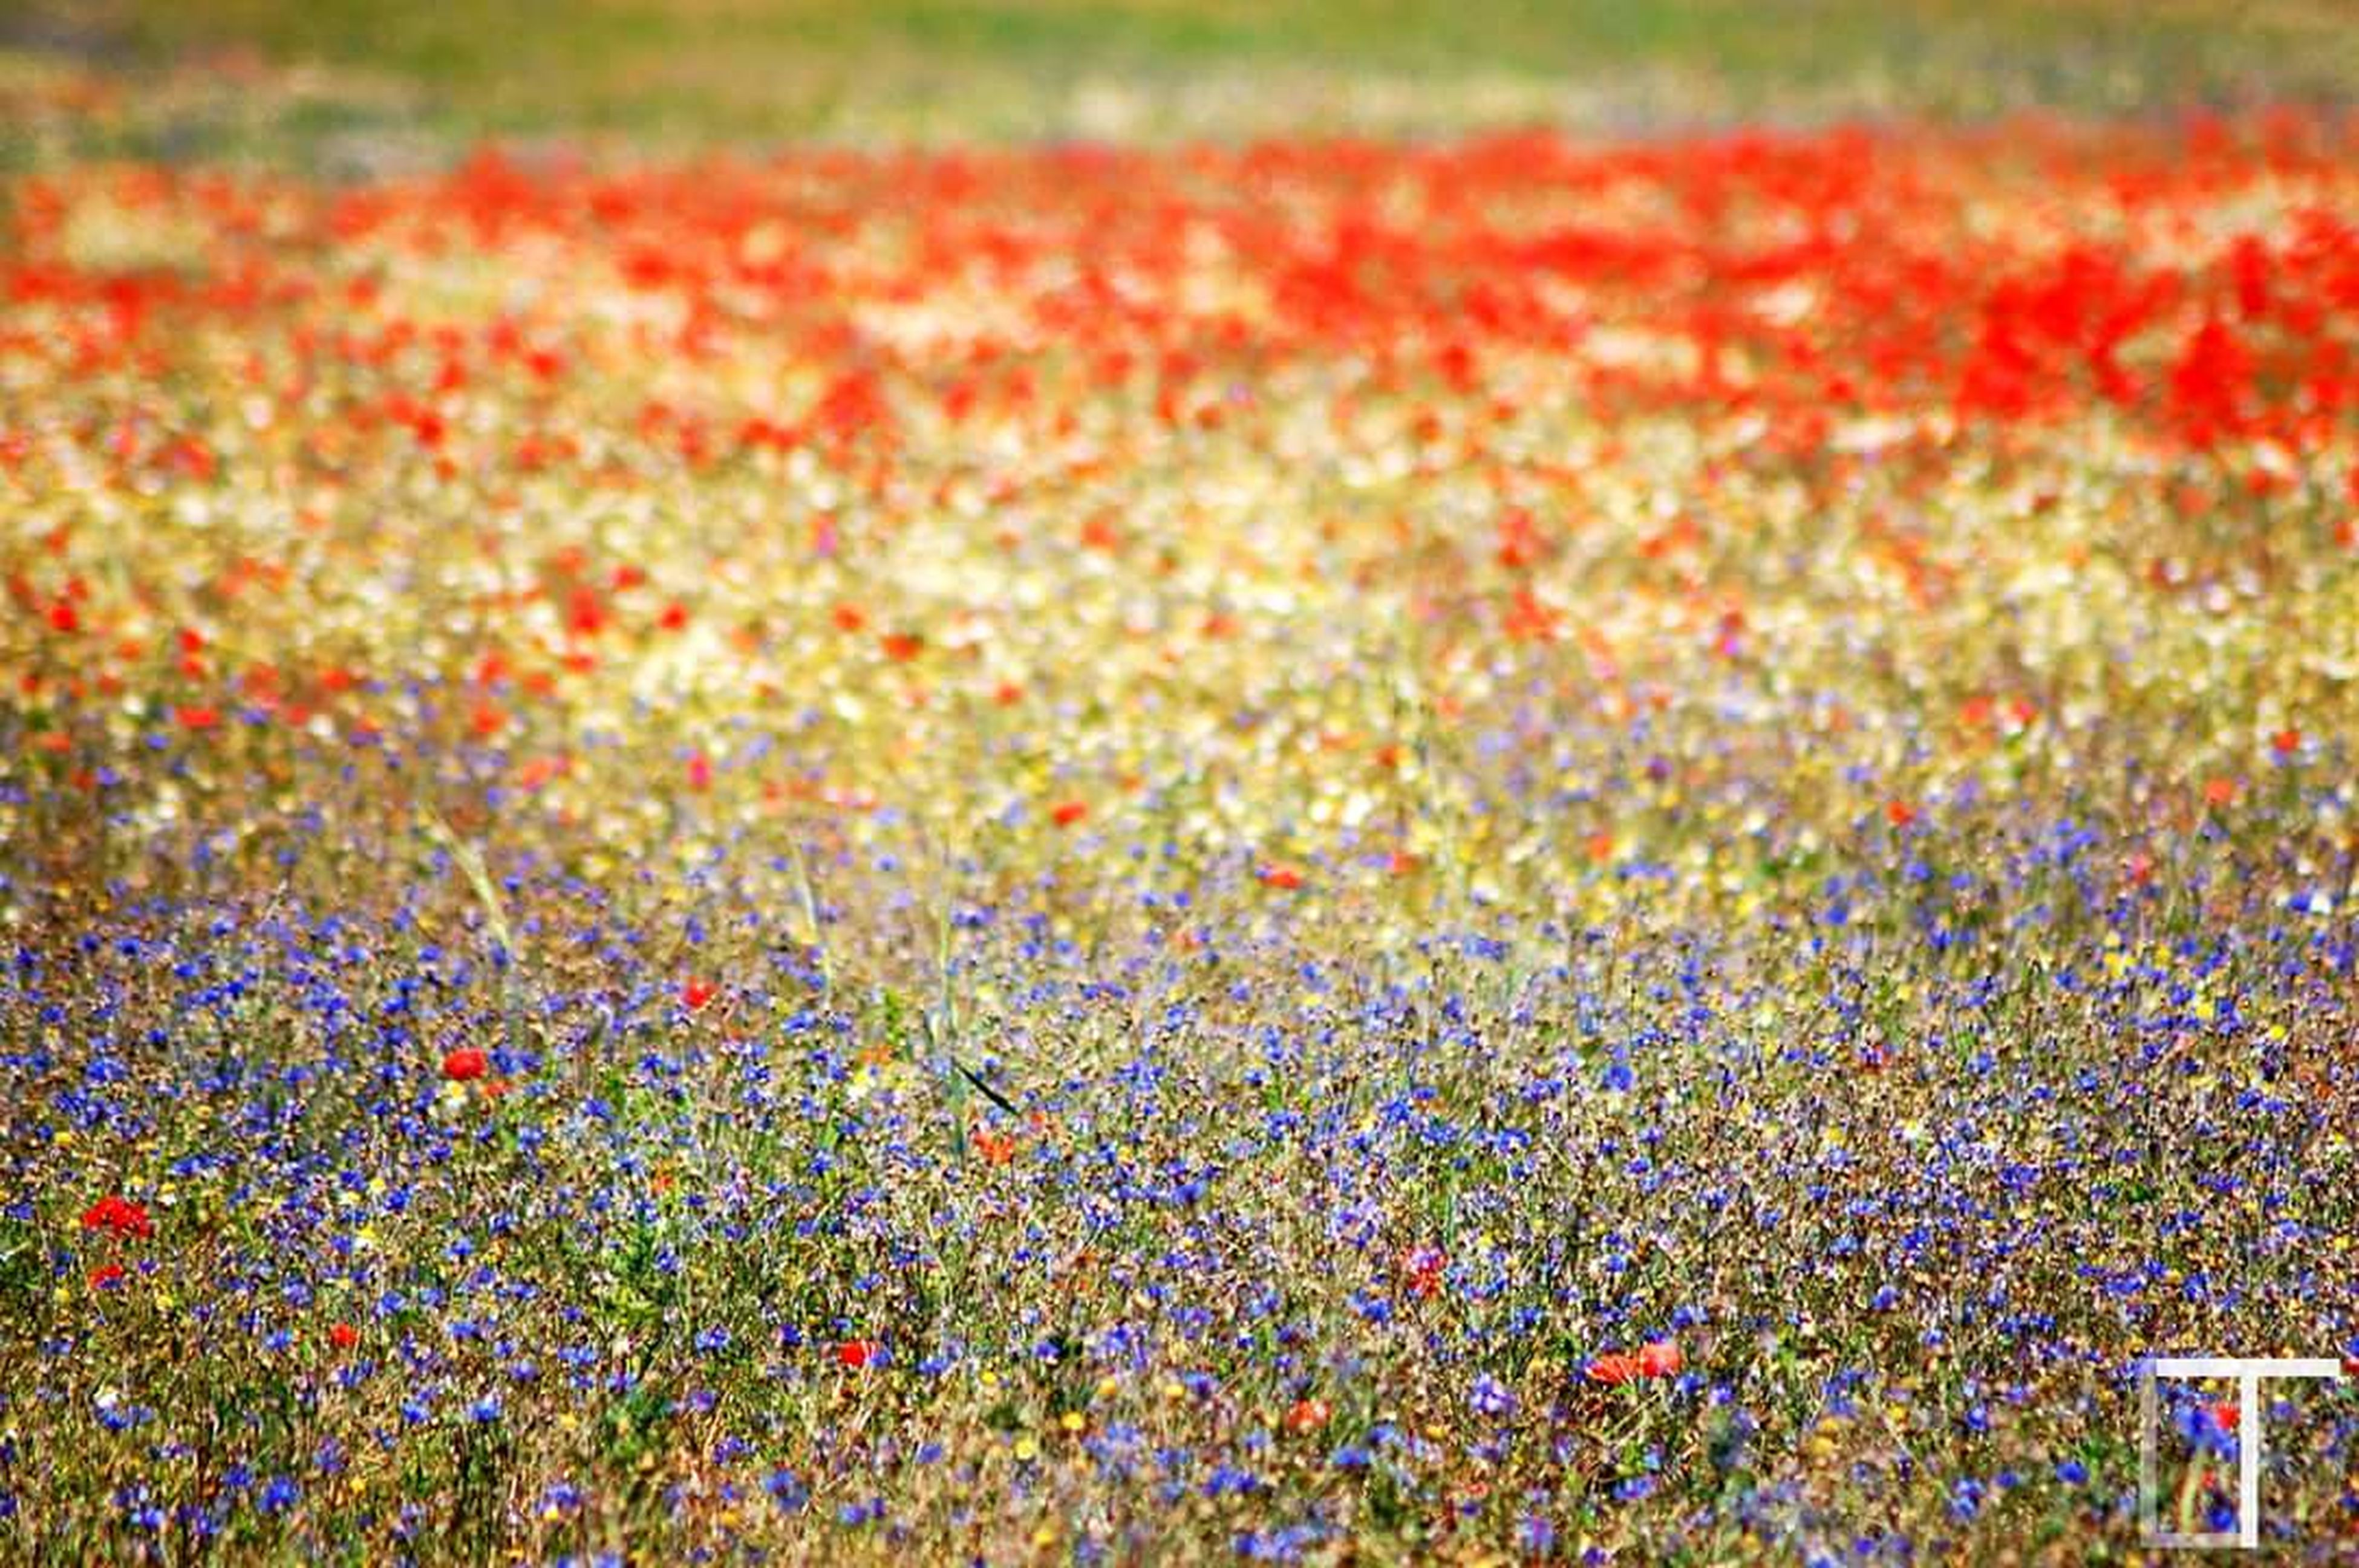 field, flower, abundance, grass, growth, beauty in nature, freshness, flowerbed, nature, multi colored, red, plant, day, fragility, tranquility, outdoors, high angle view, agriculture, landscape, blooming